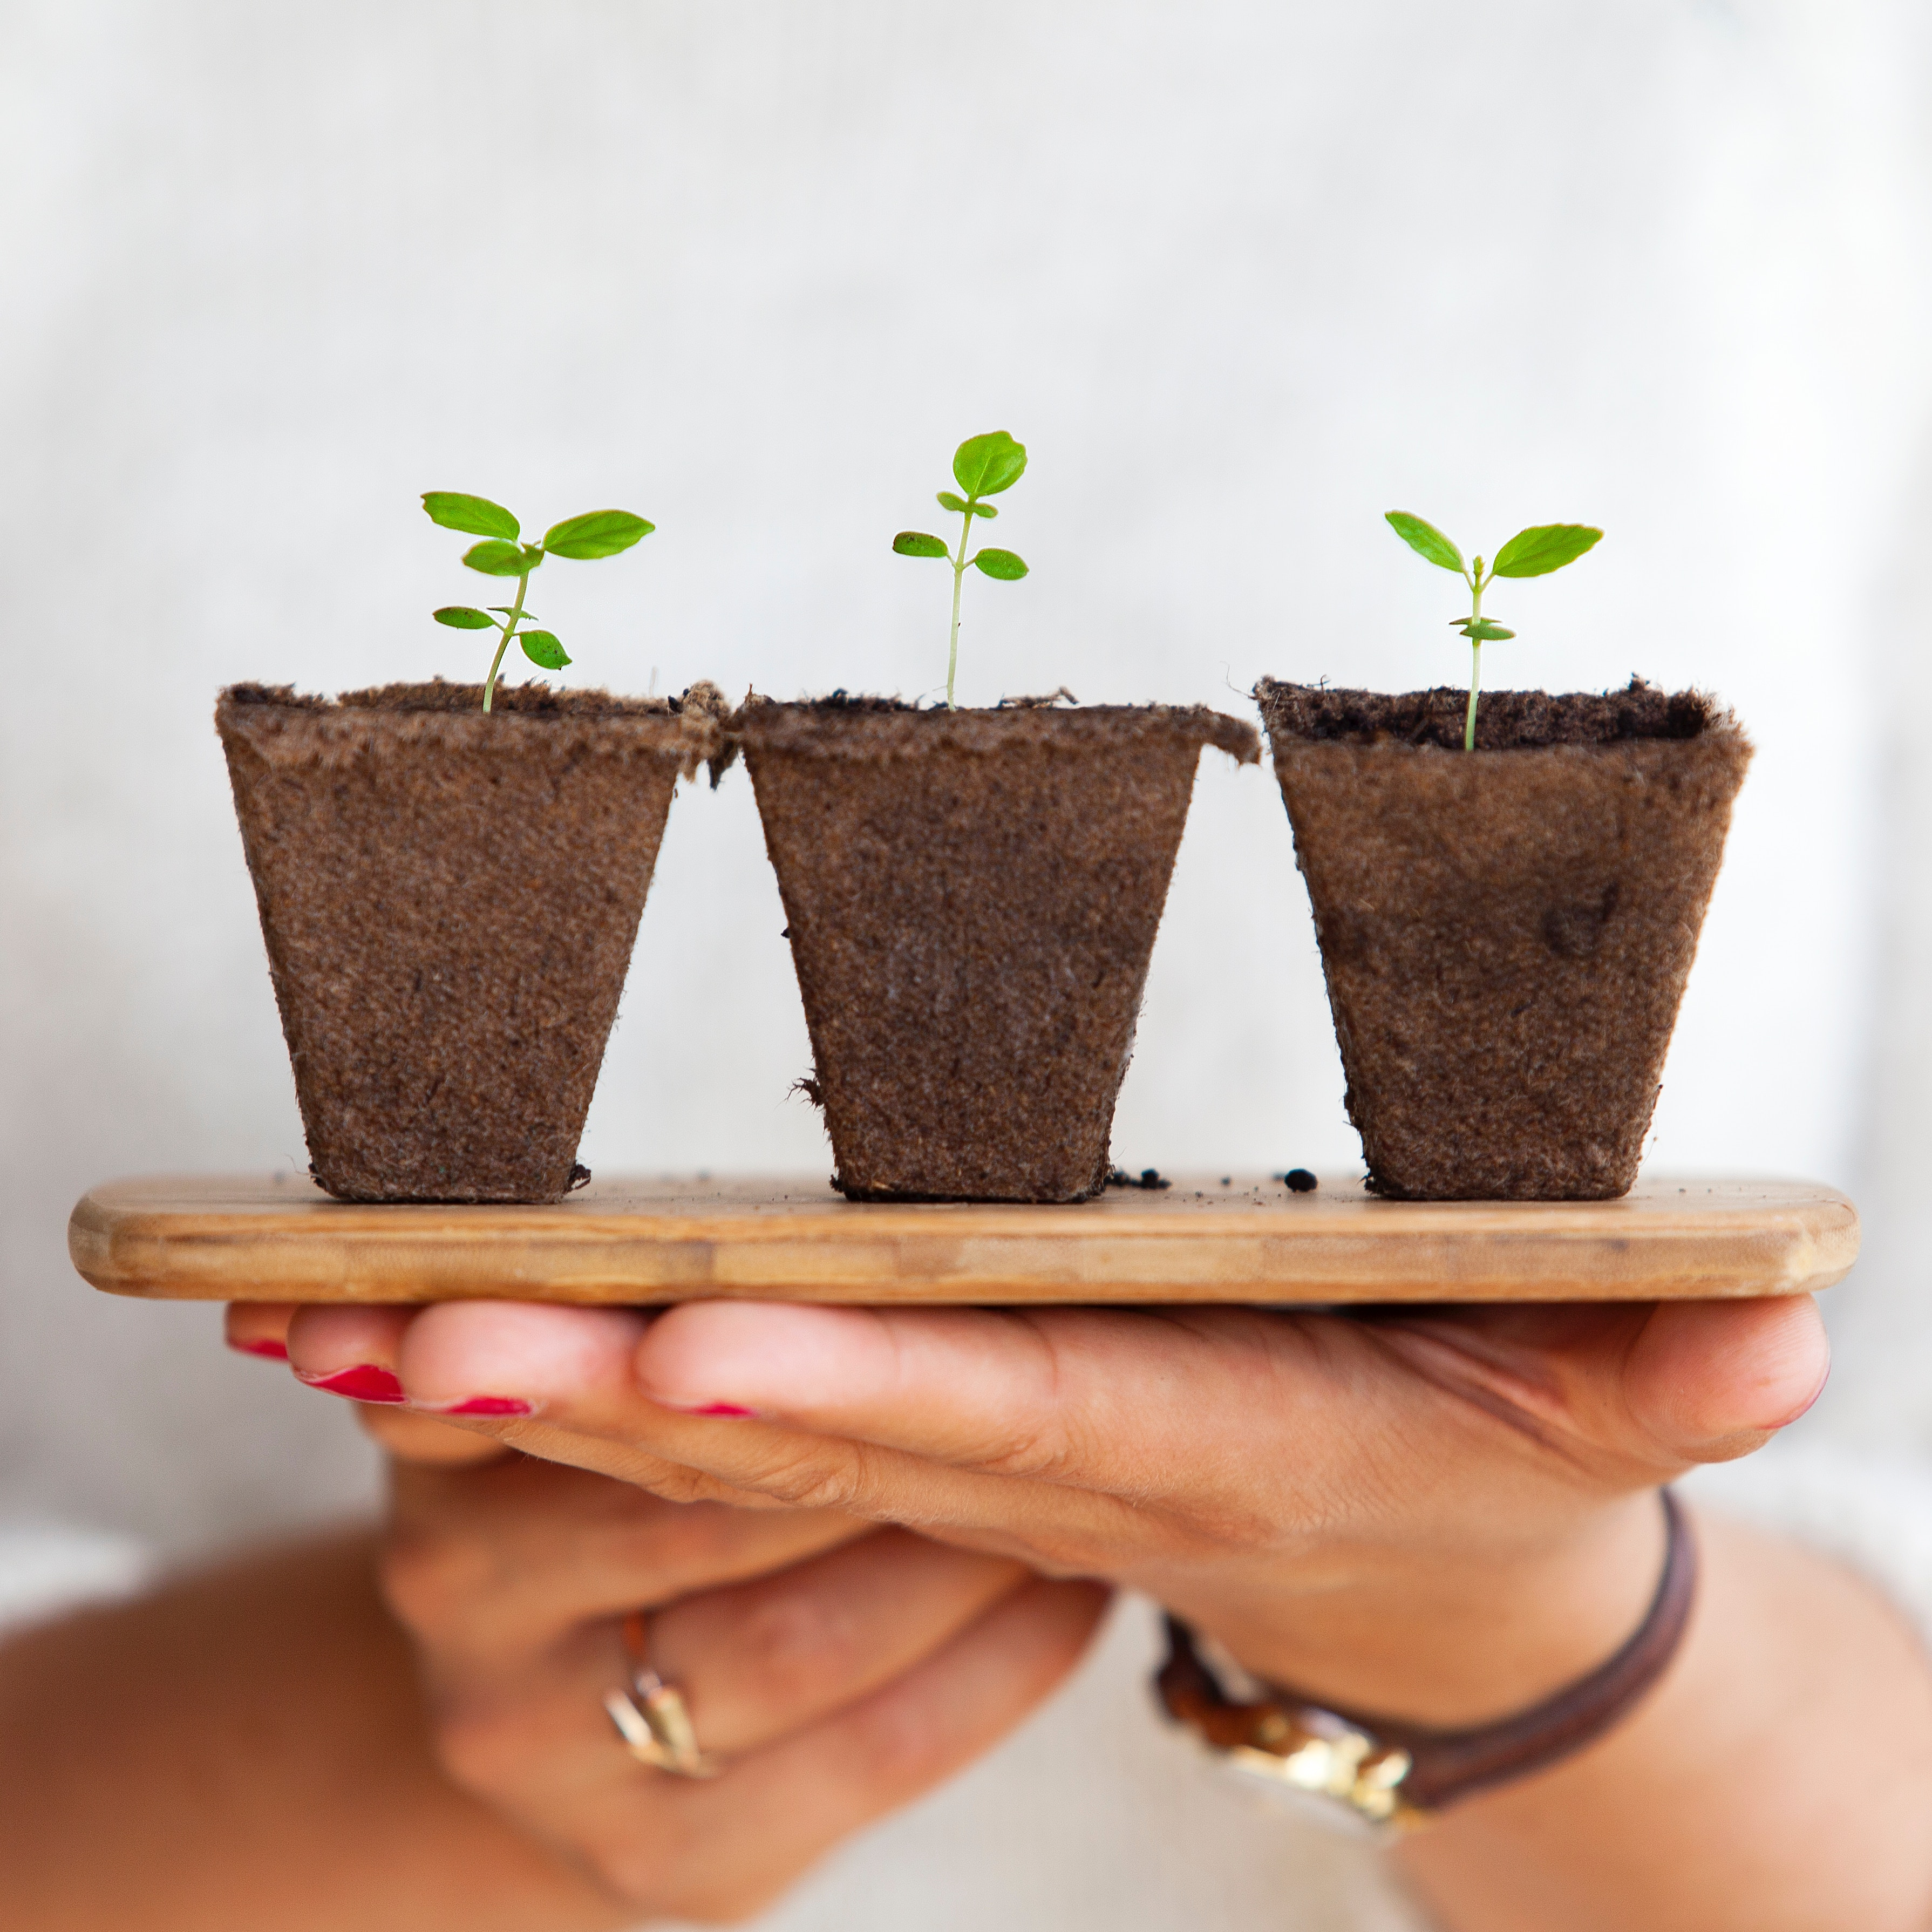 women's hands holding three planters with green plants beginning to sprout